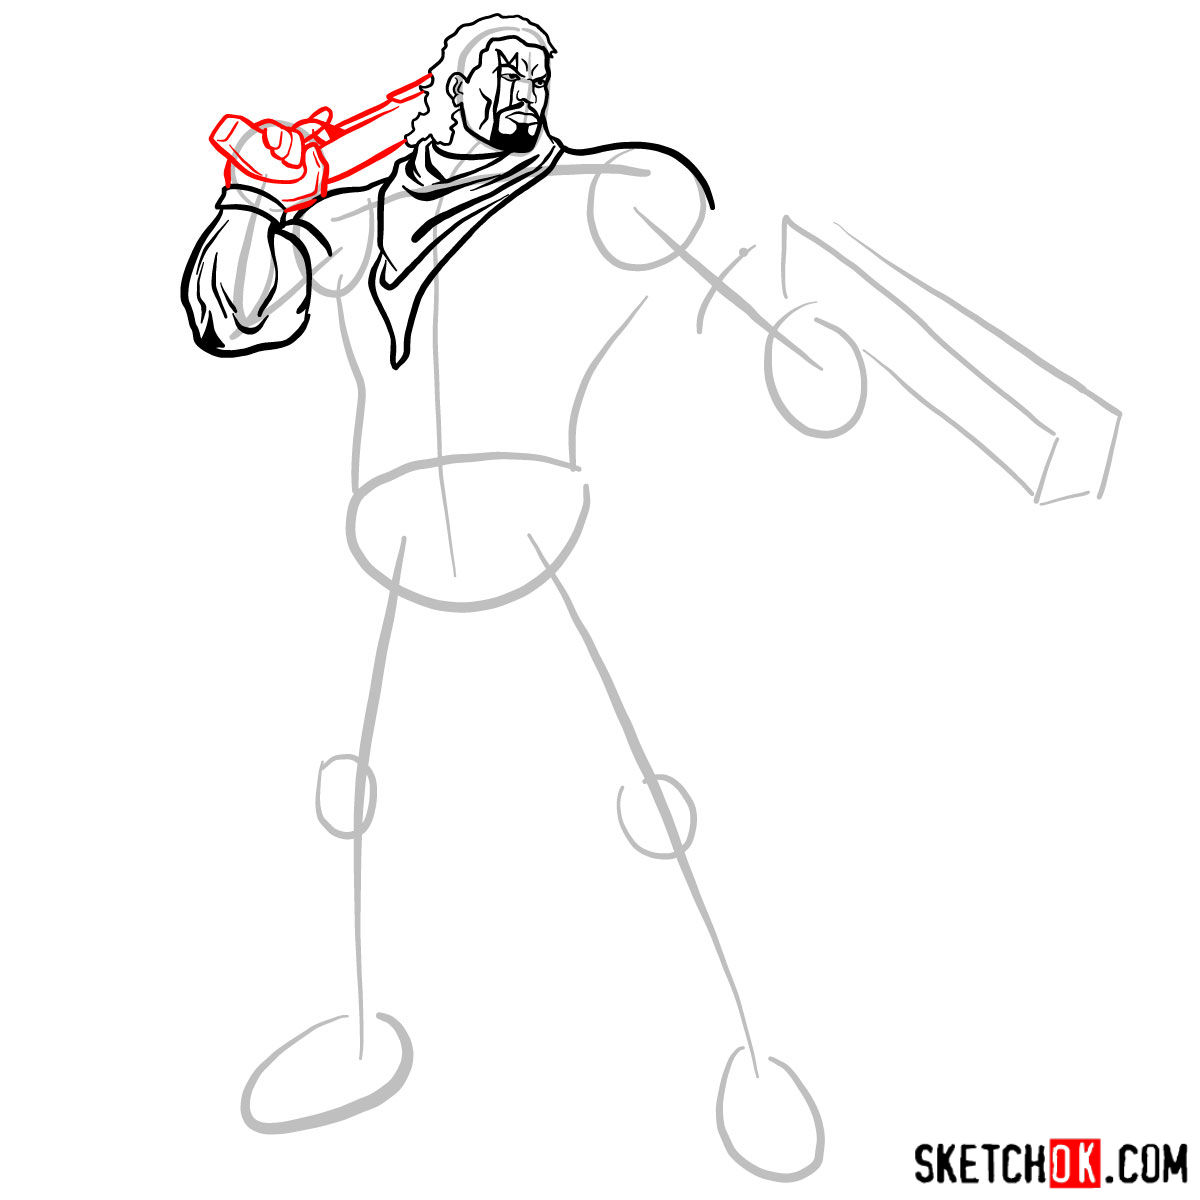 How to draw Lucas Bishop, a mutant from X-Men series - step 08